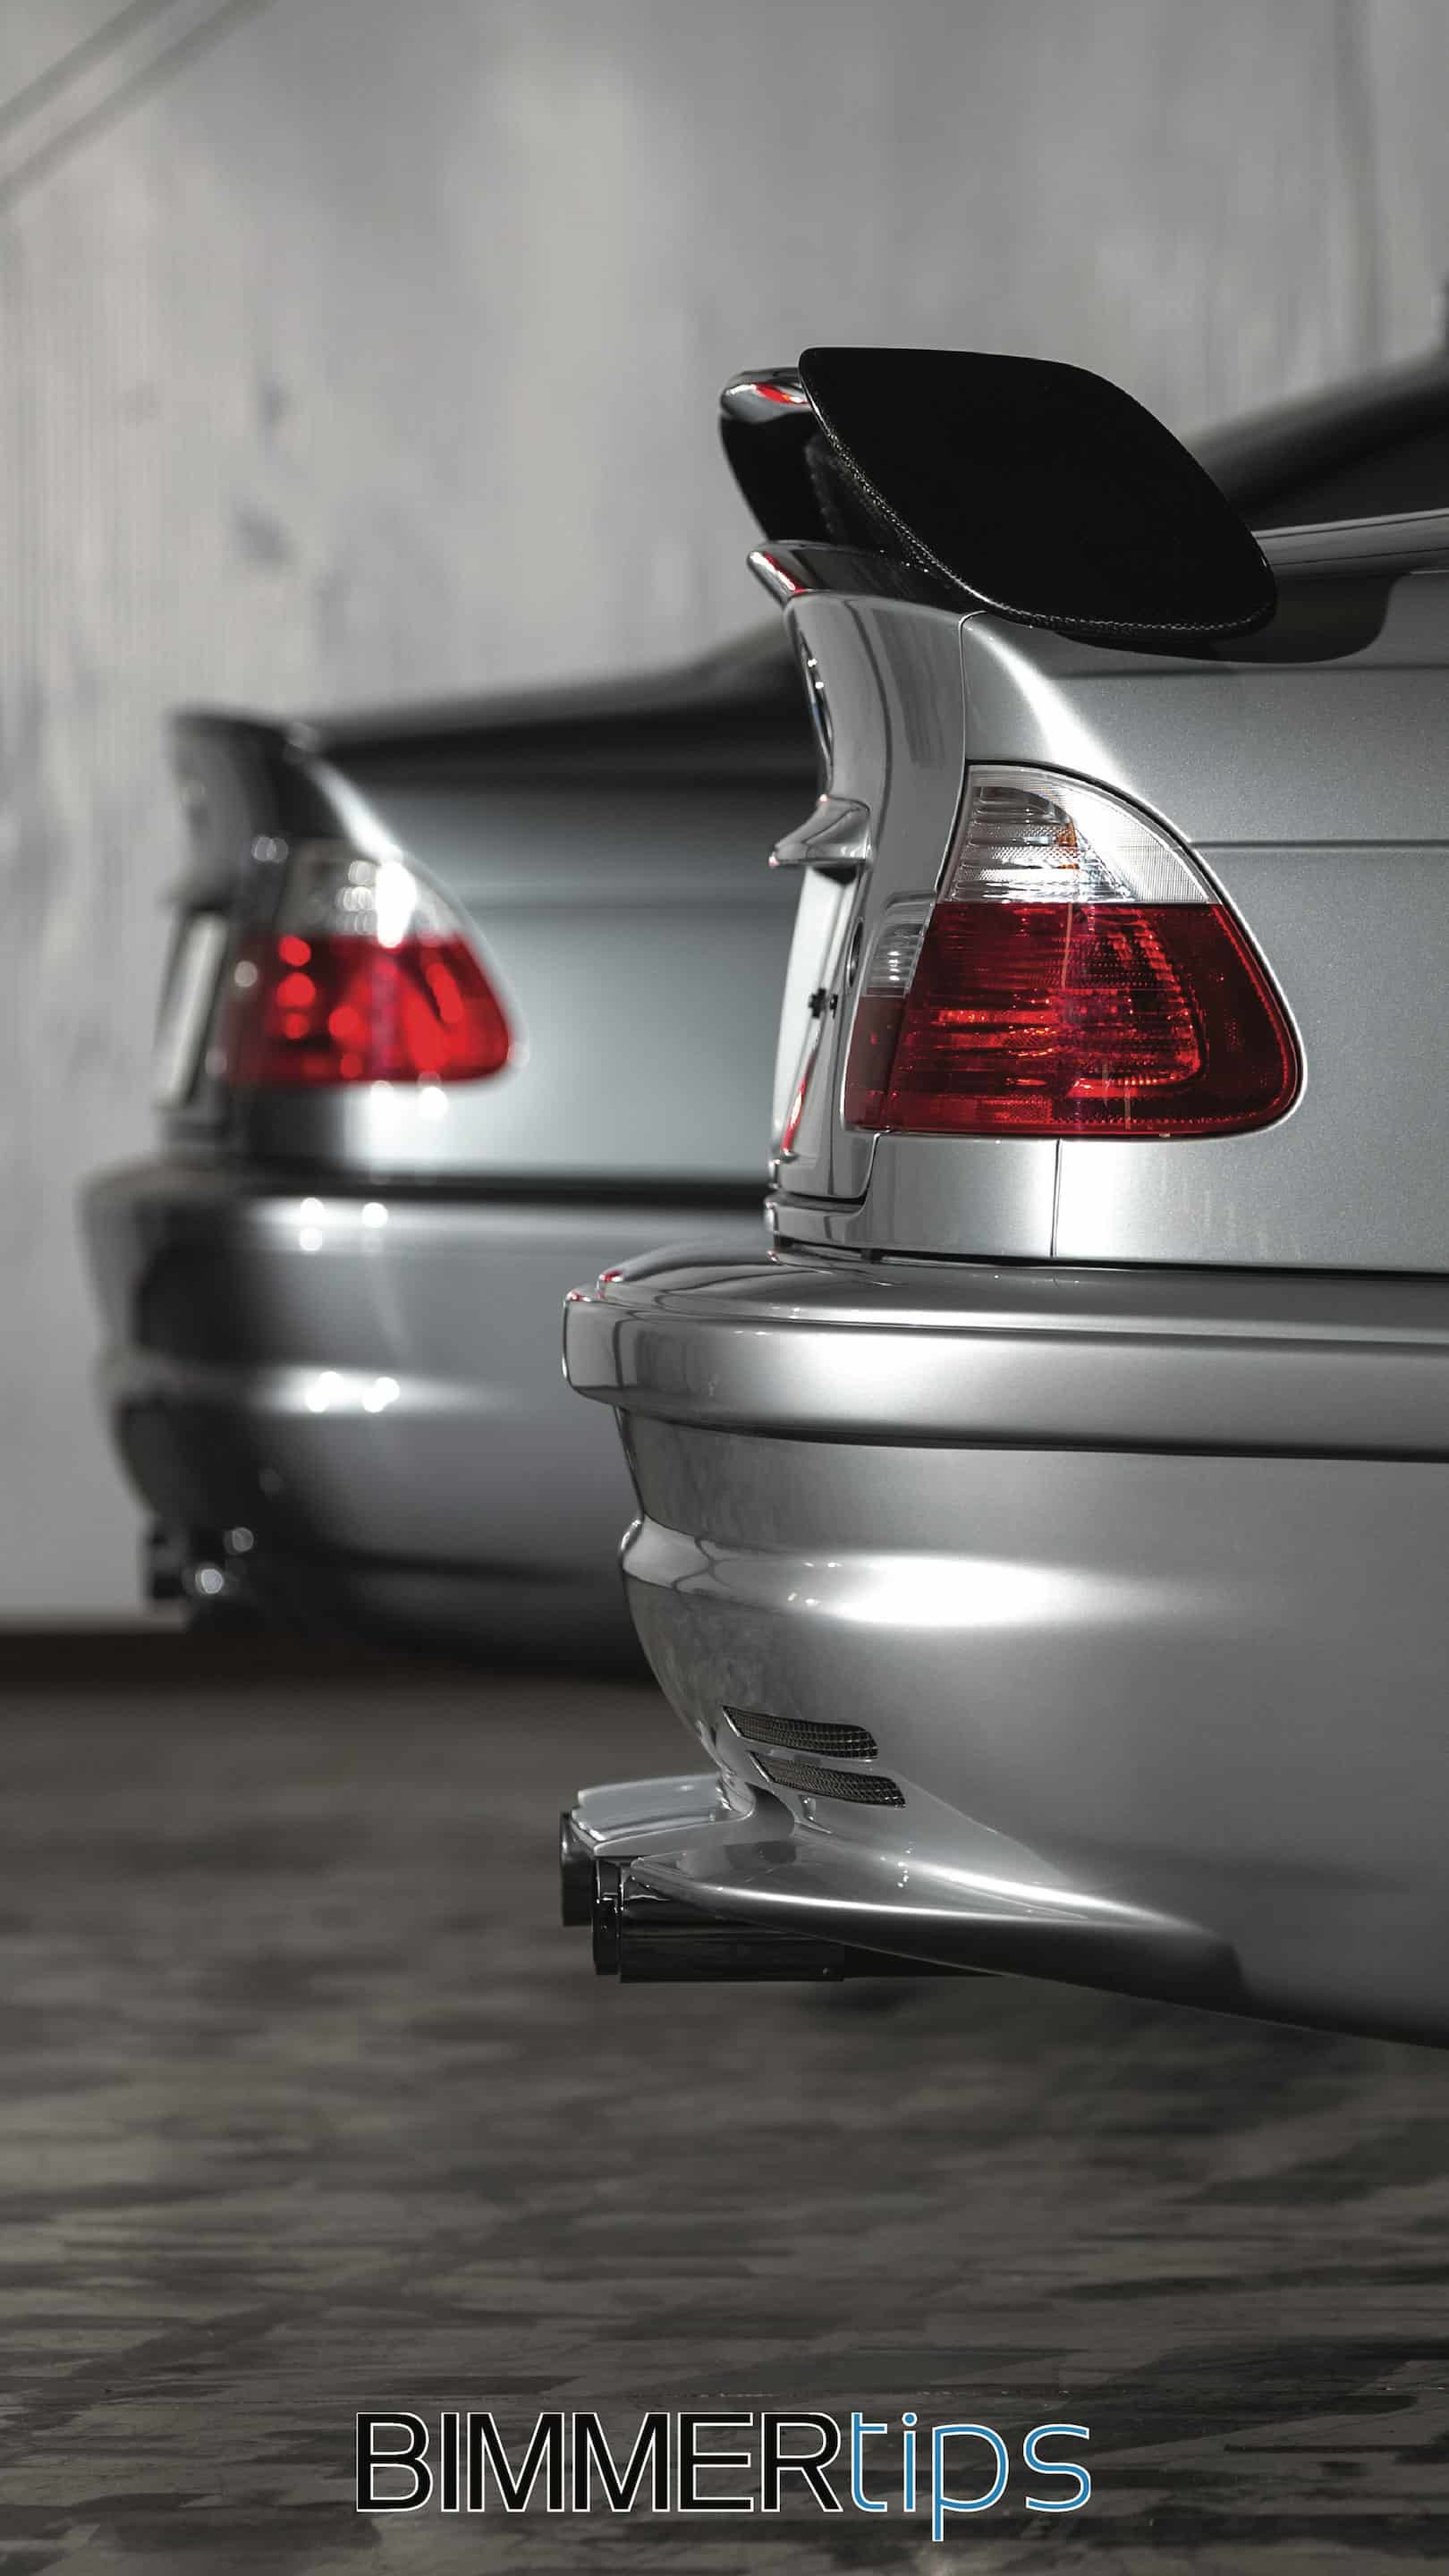 1620x2880 Bmw E46 M3 Gtr Wallpaper Android Iphone E46 M3 Gtr Street 1620x2880 Download Hd Wallpaper Wallpapertip